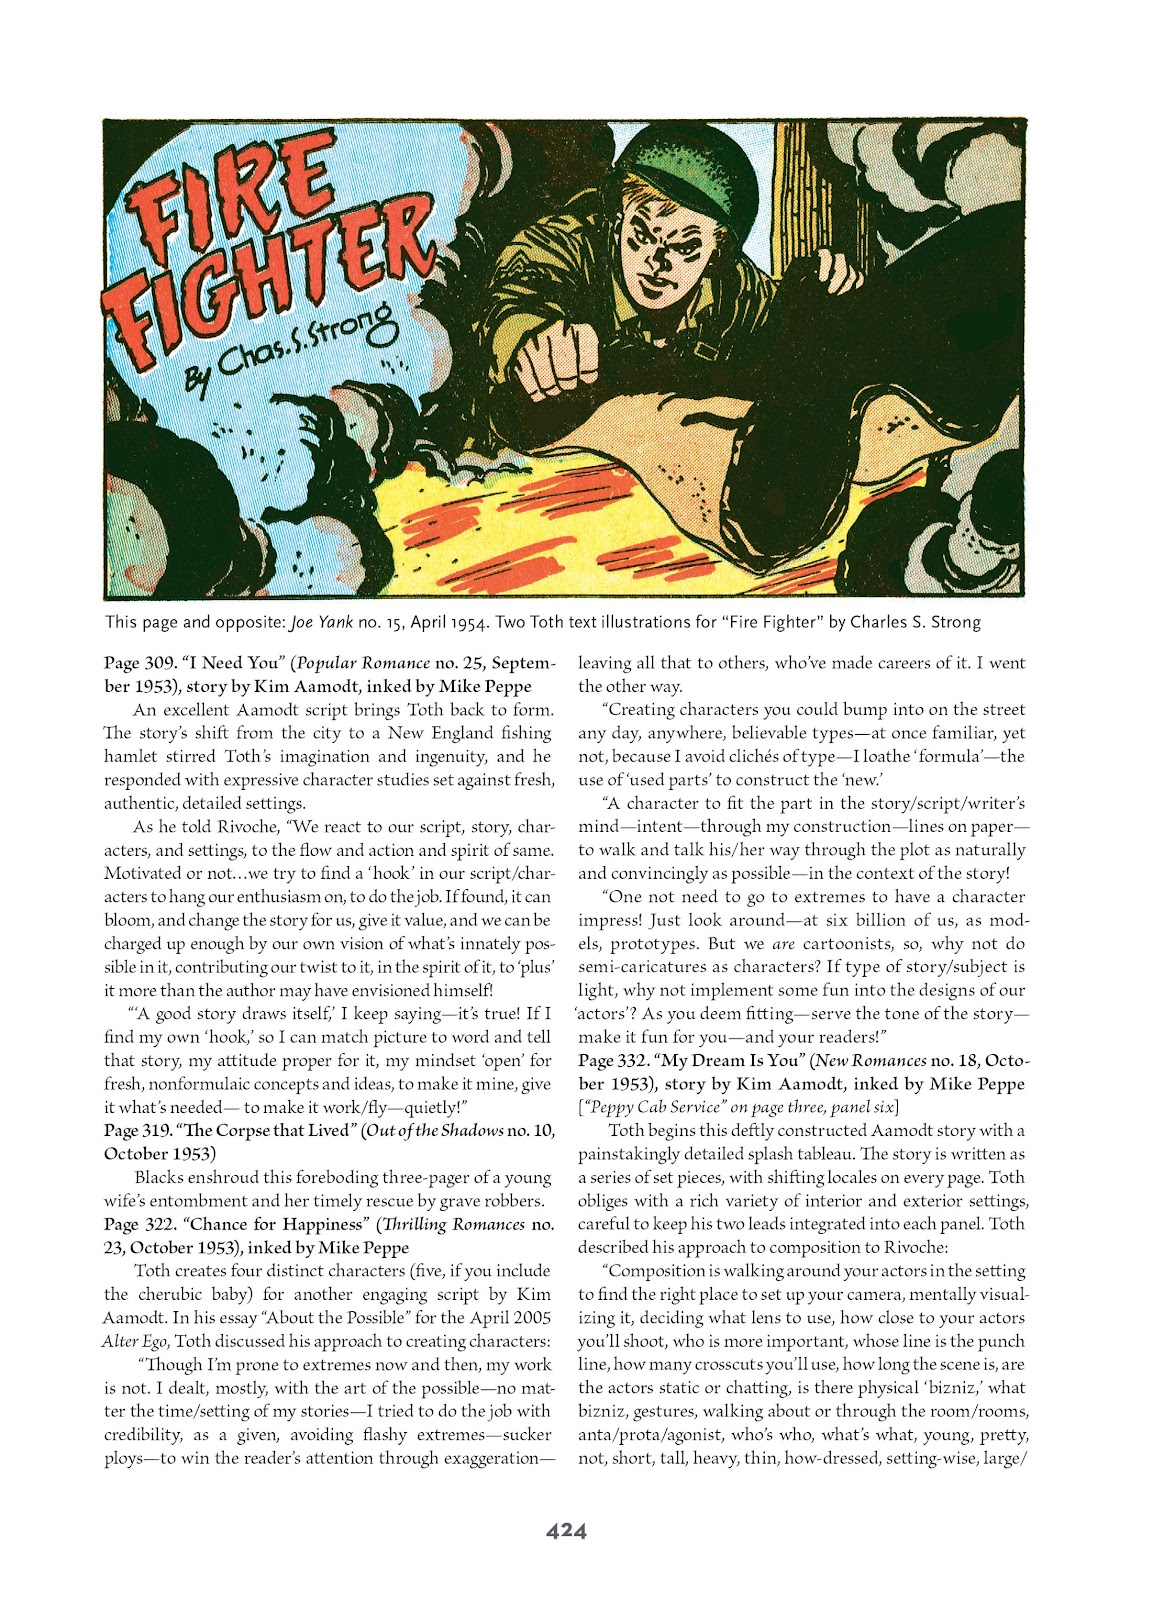 Read online Setting the Standard: Comics by Alex Toth 1952-1954 comic -  Issue # TPB (Part 4) - 125